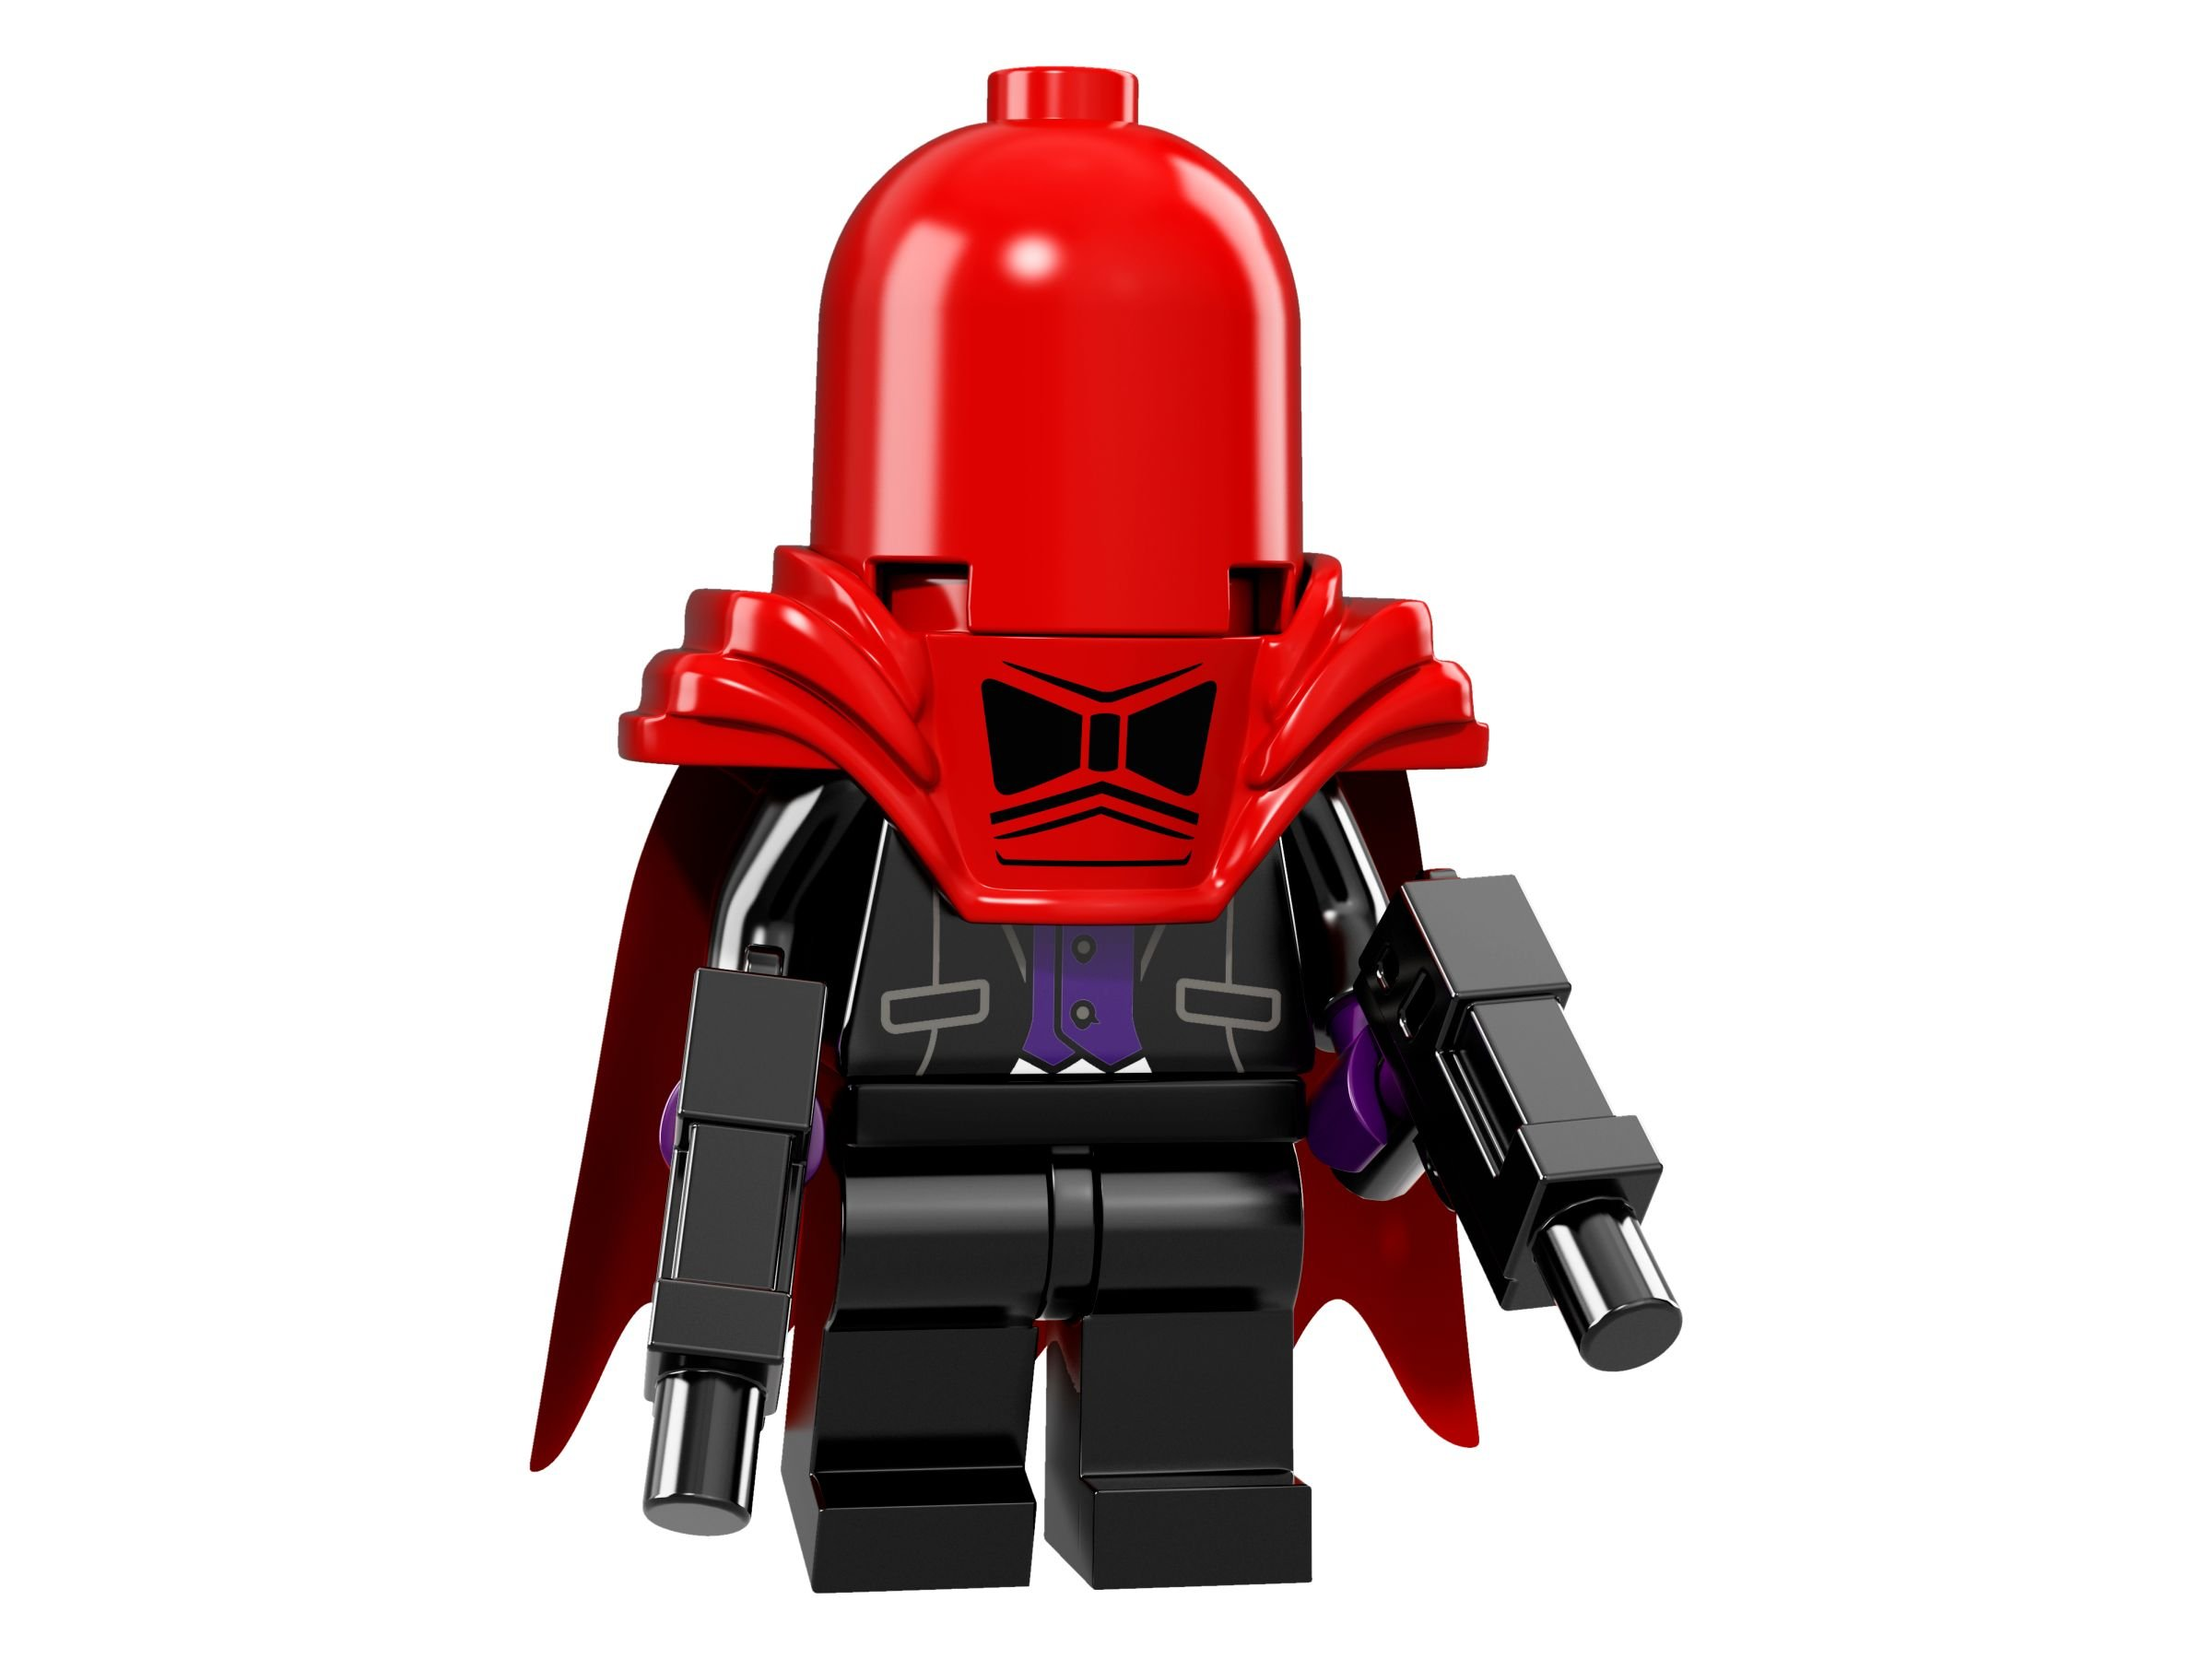 LEGO Collectable Minifigures 71017 LEGO® Batman Movie Minifiguren Serie LEGO_71017_alt7.jpg